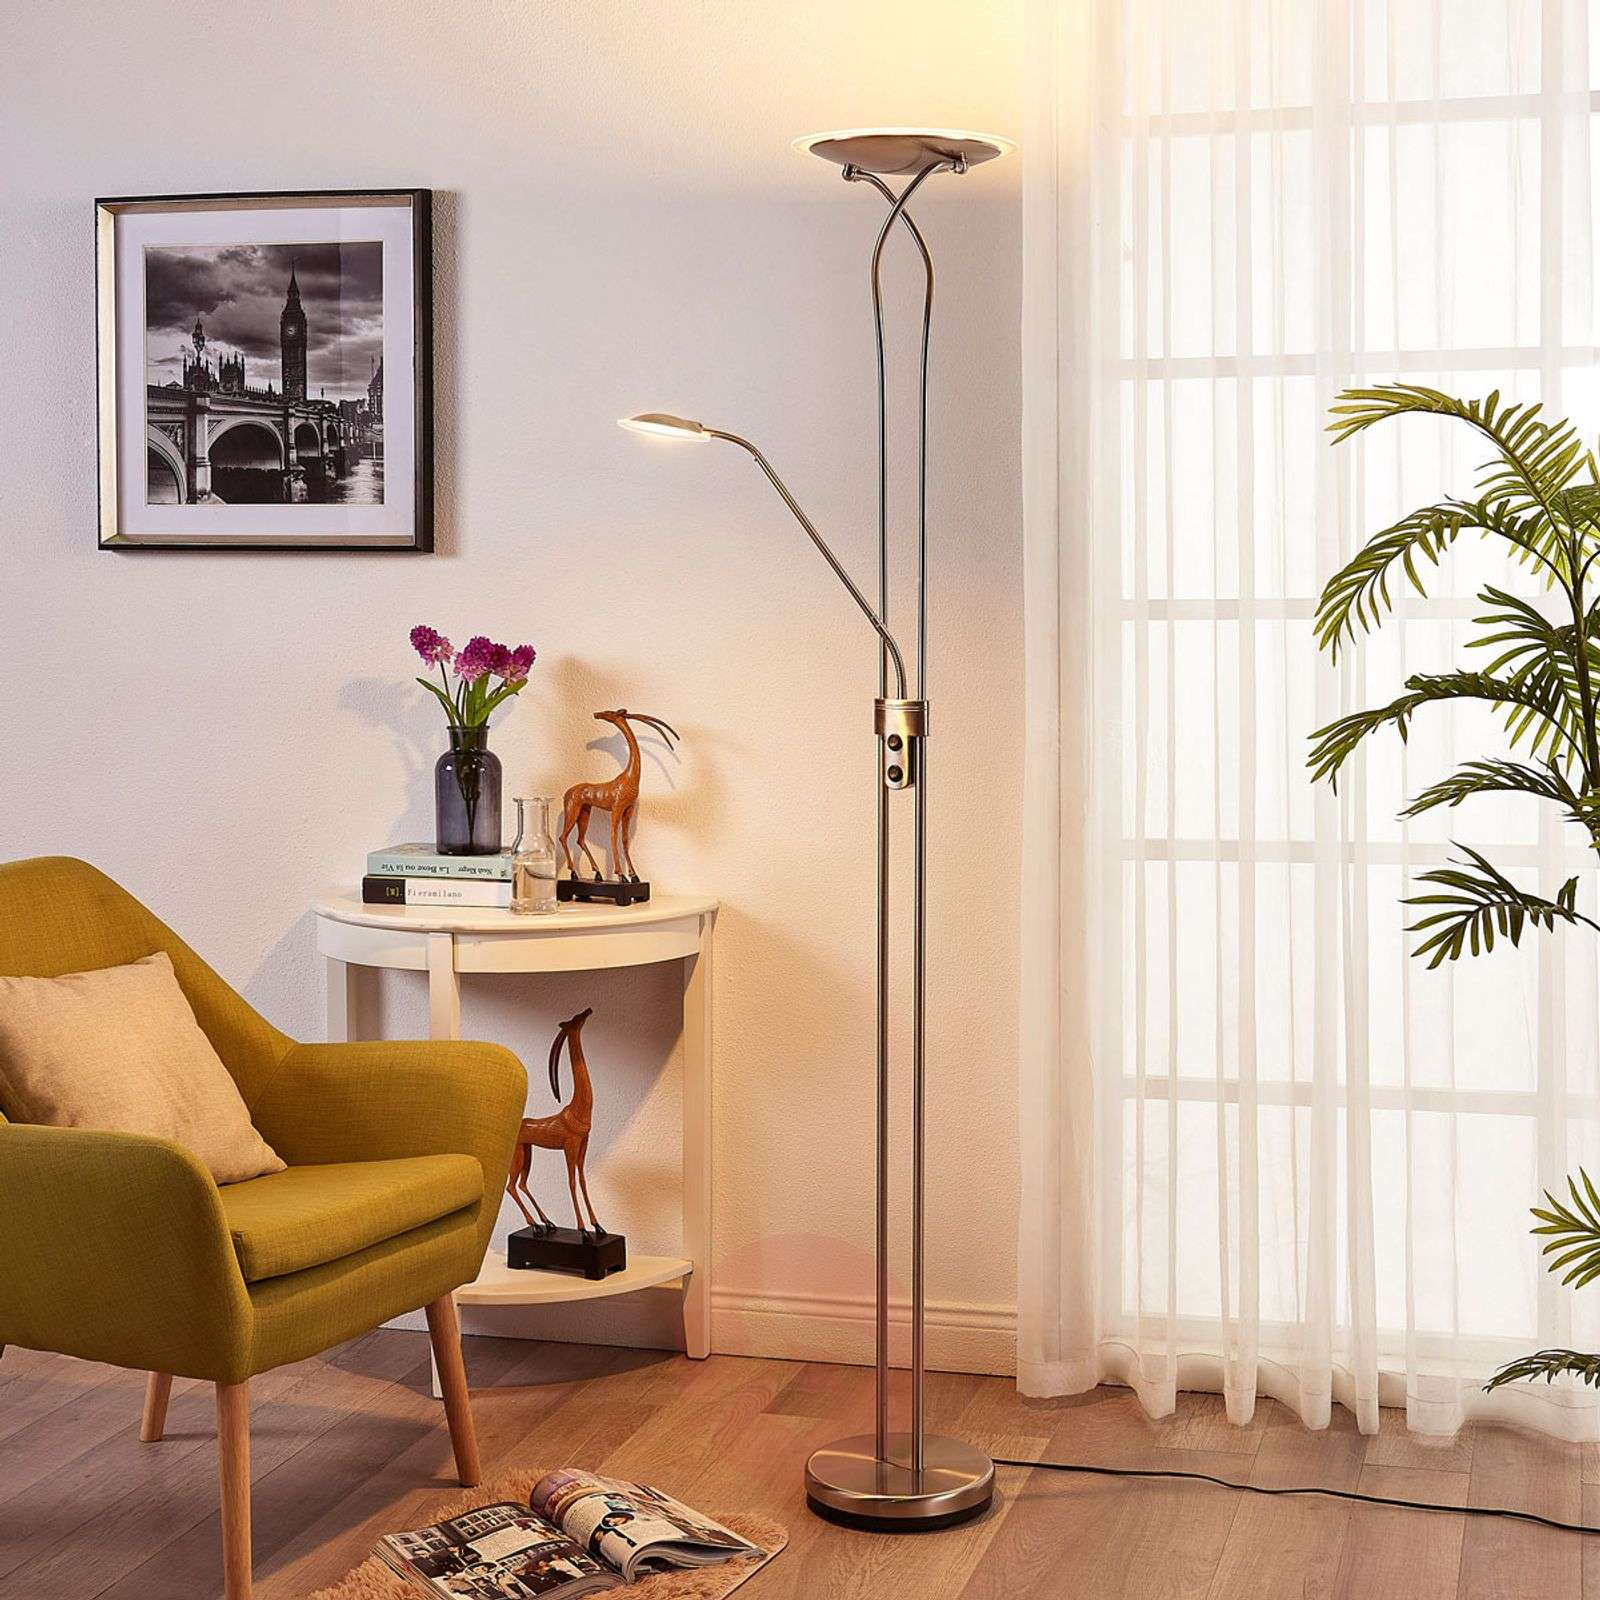 Lampadaire à éclairage indirect LED Selina liseuse-9621133-01